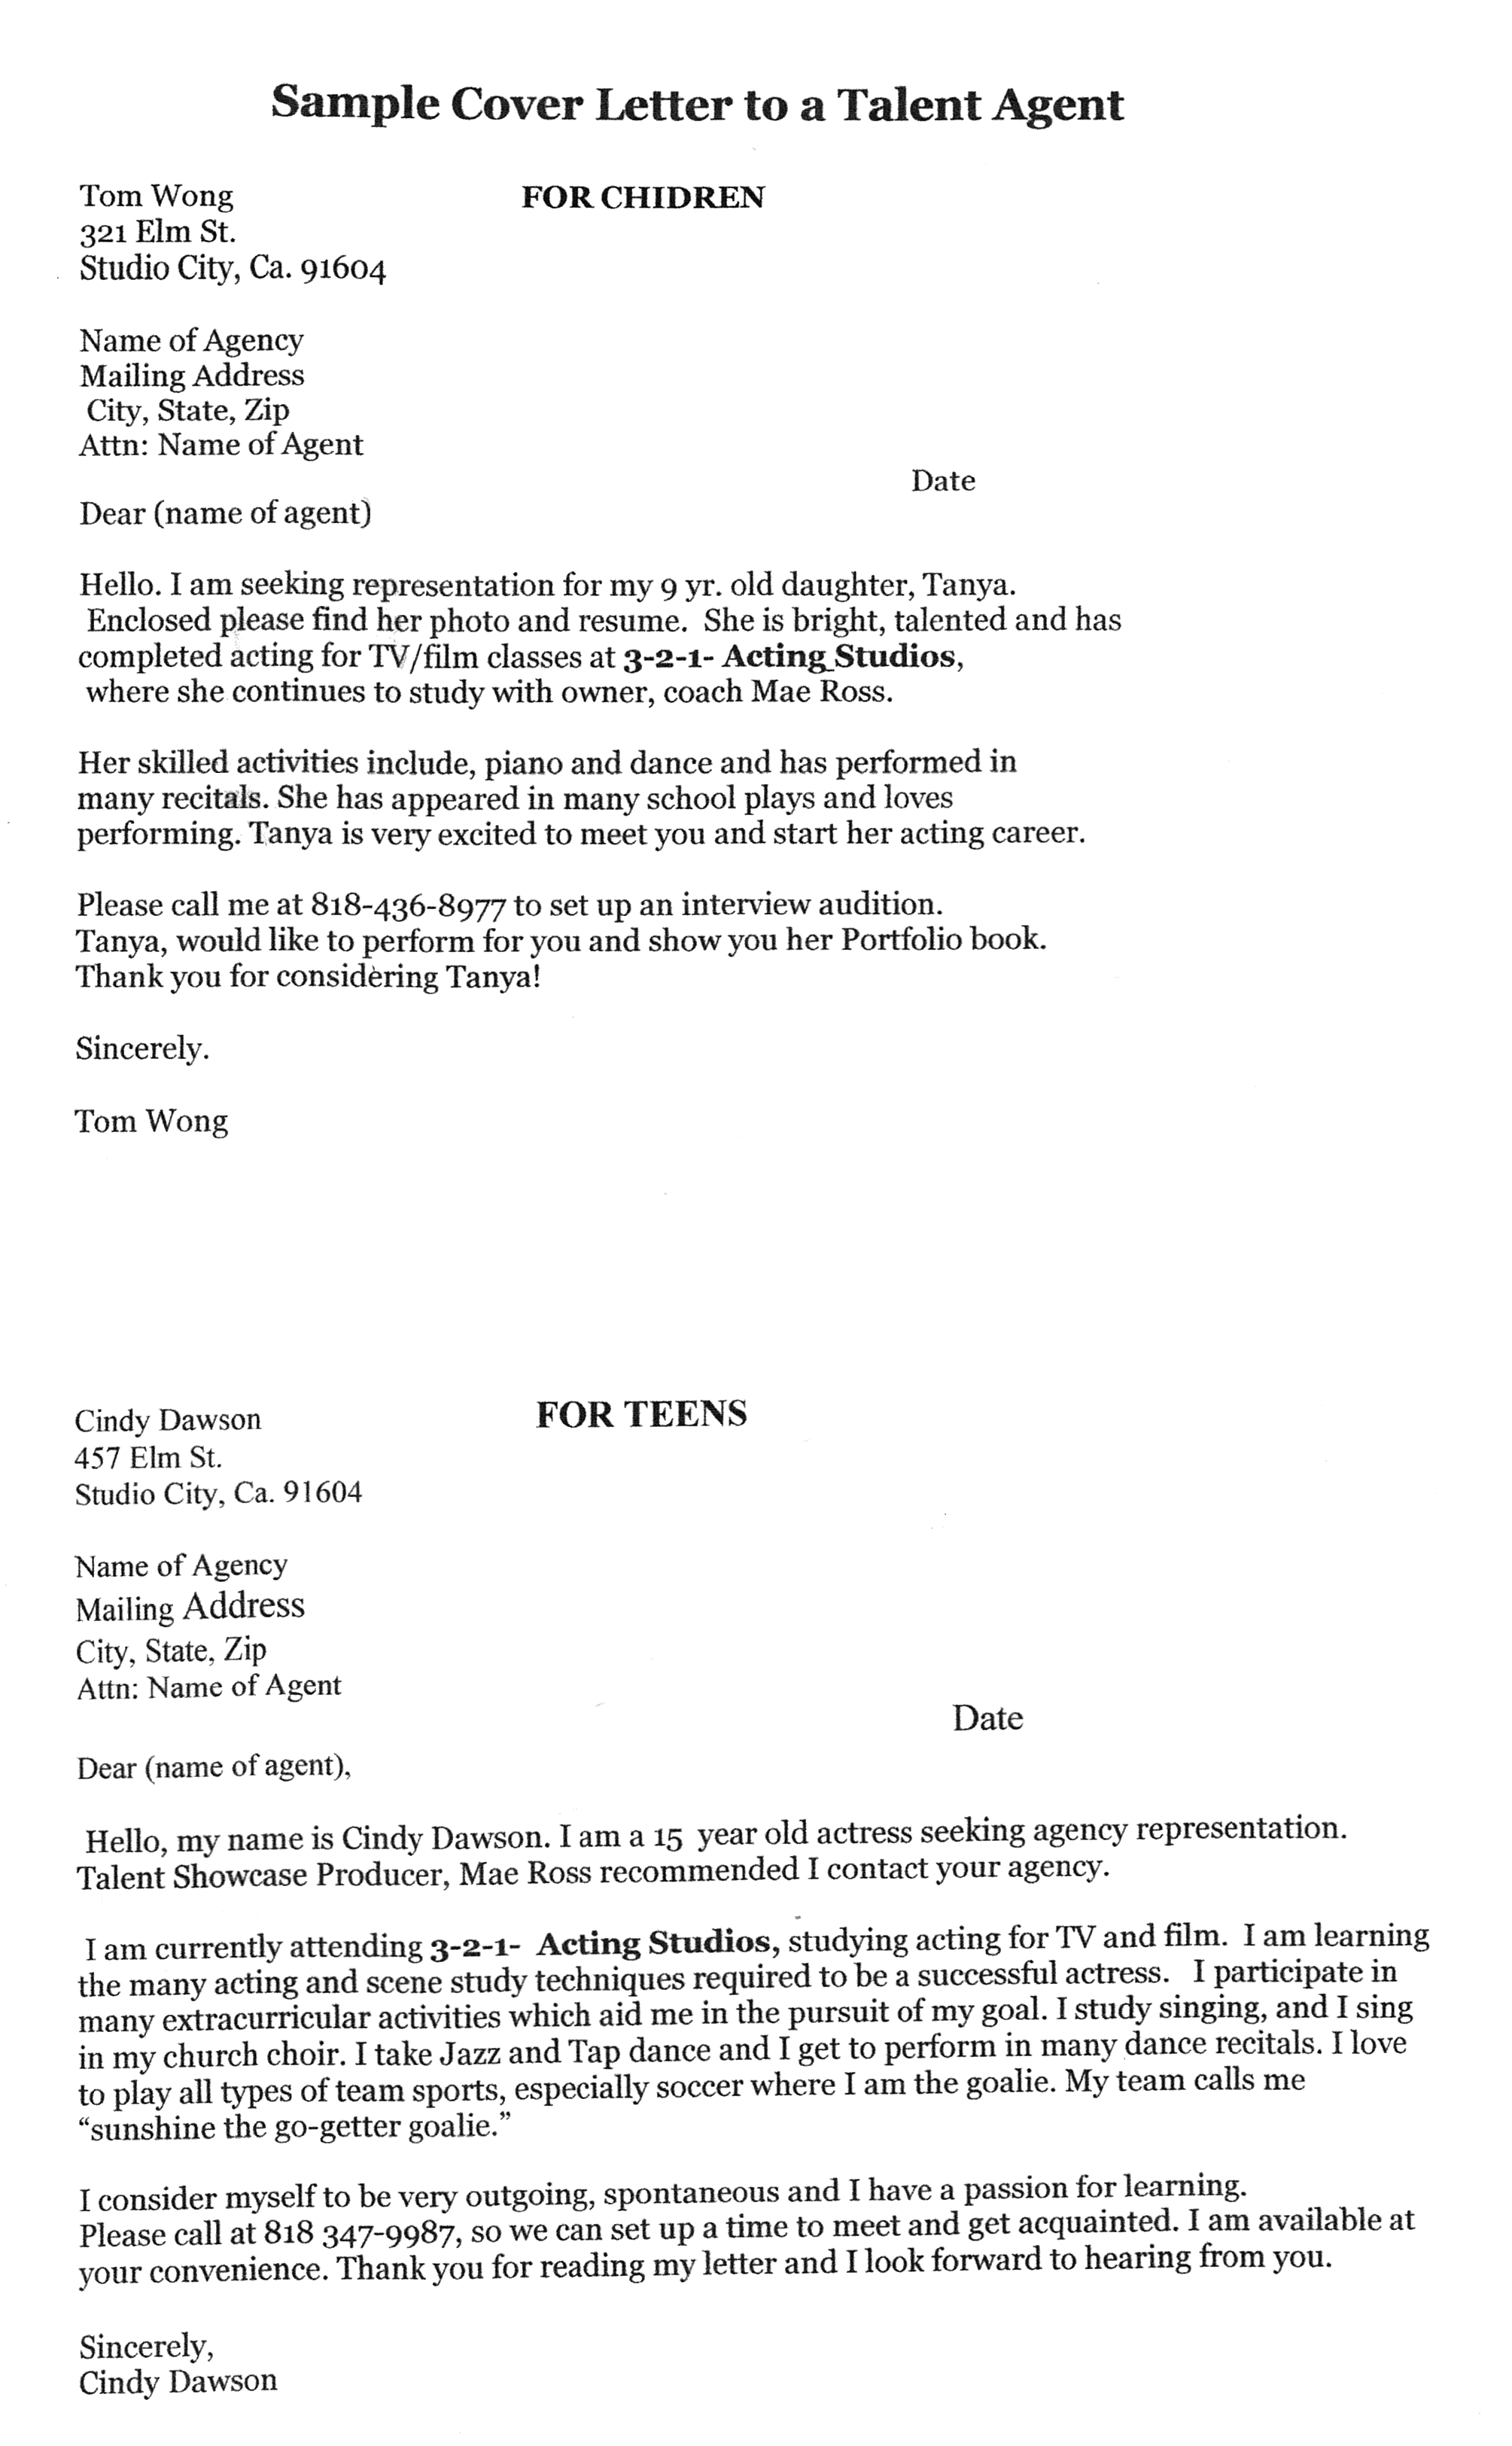 good sample cover letters to talent agents